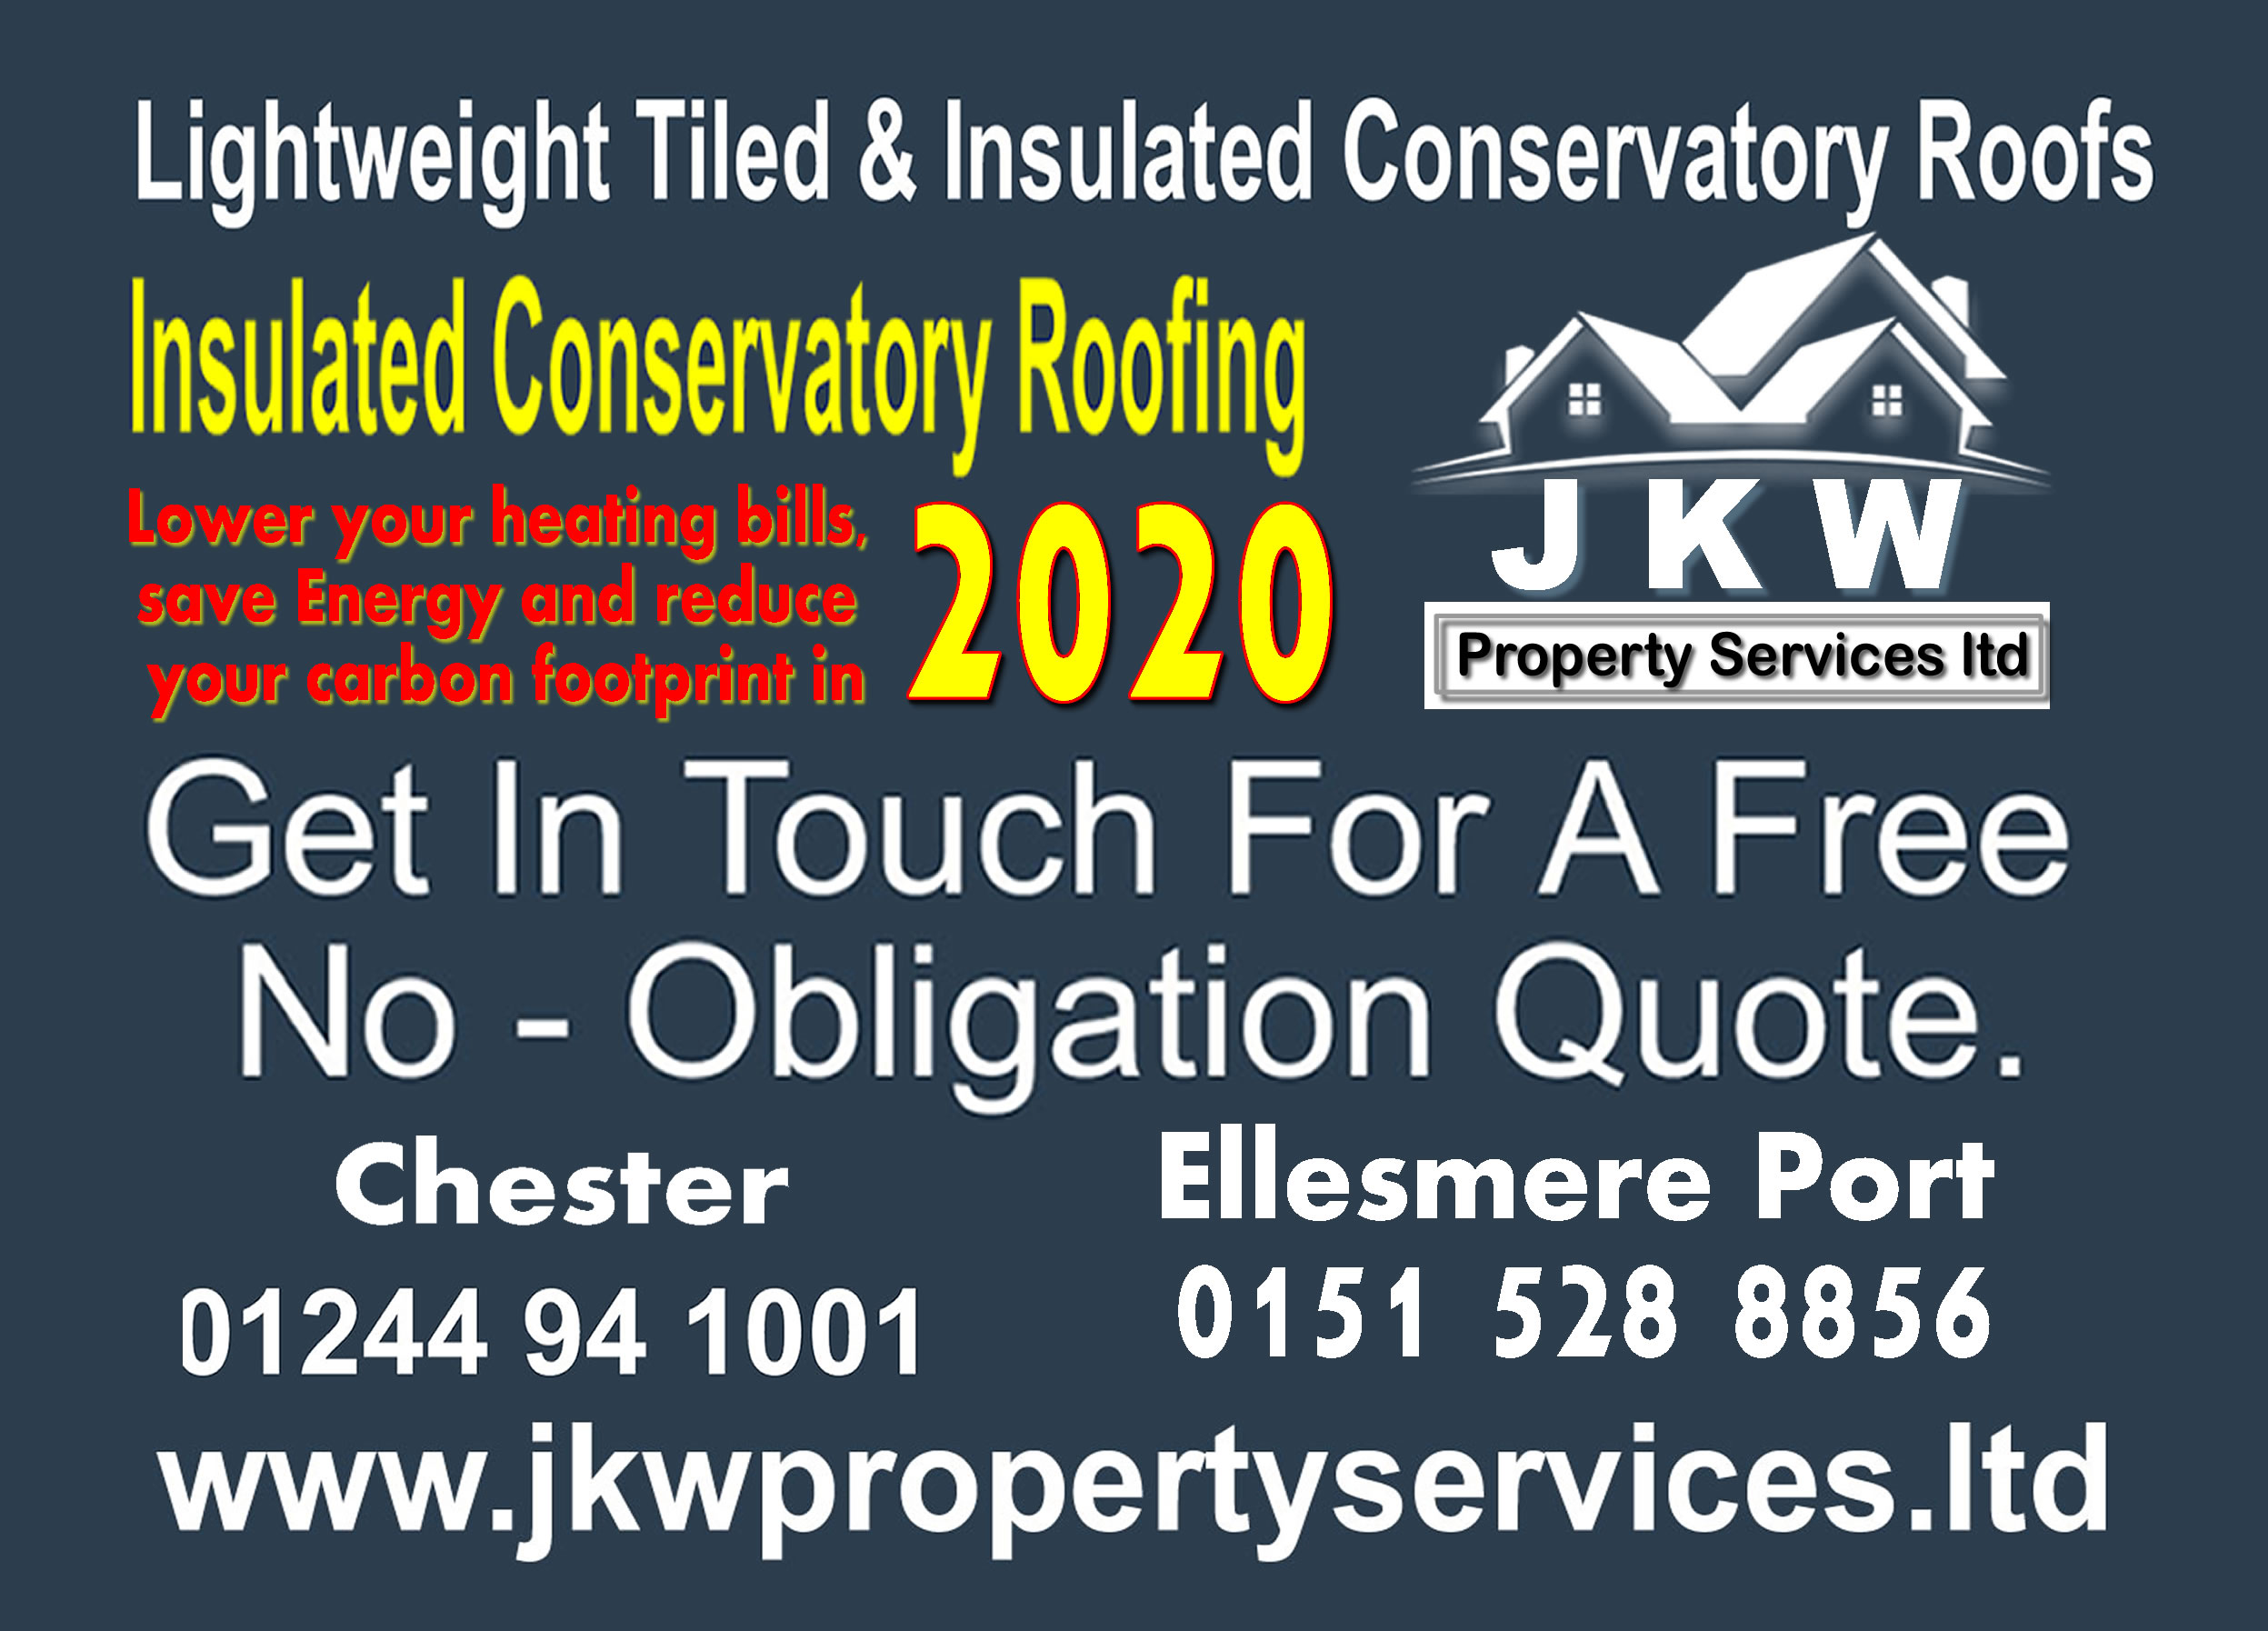 Ellesmere Port Low Cost Conservatory Roof Conversions